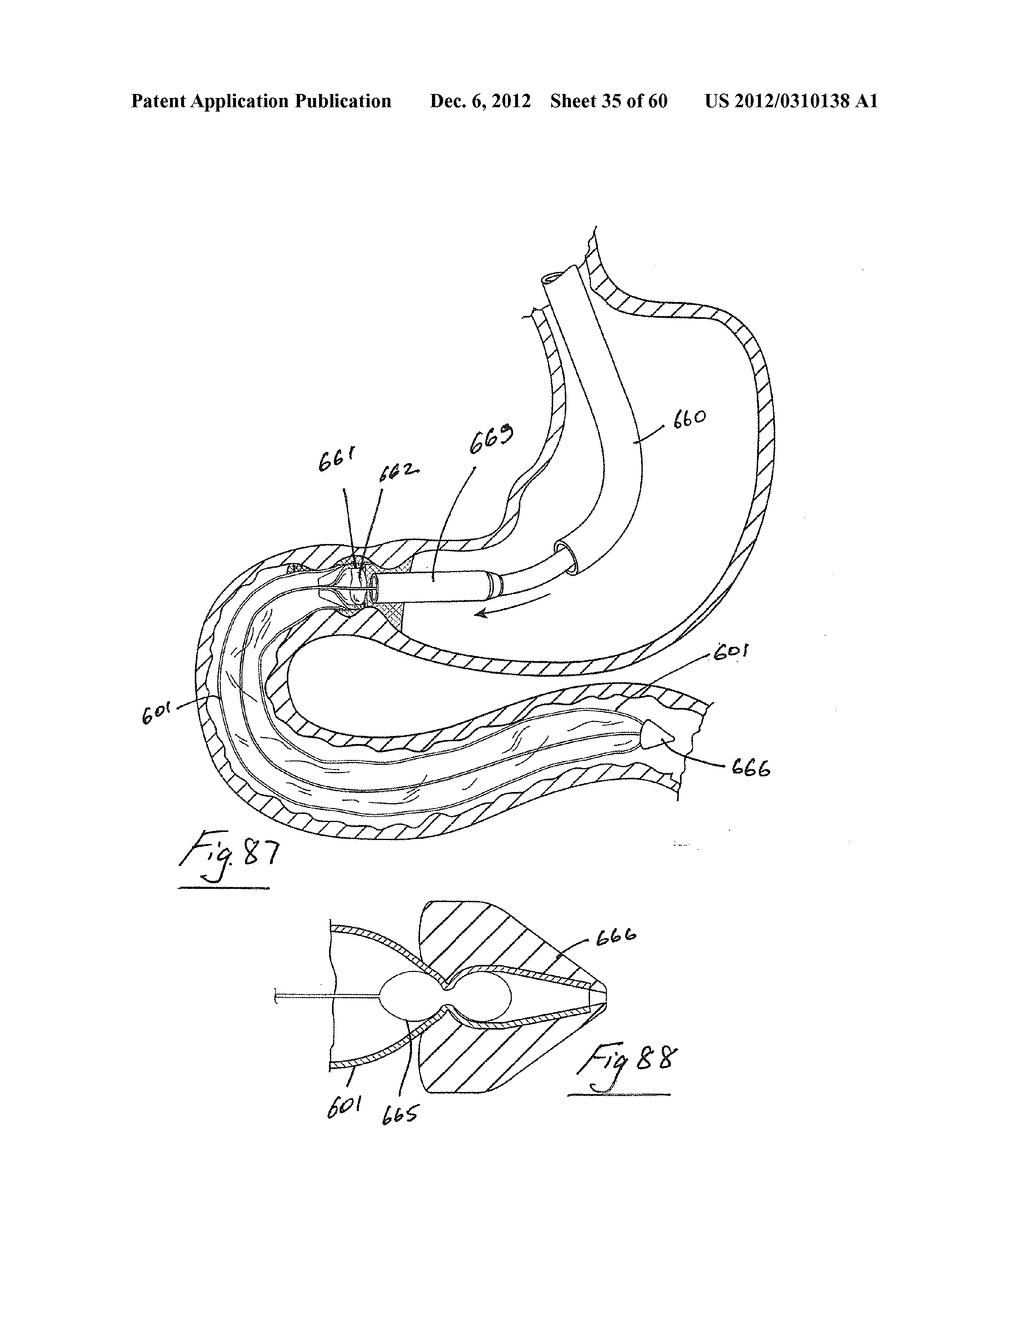 GASTROINTESTINAL IMPLANT DEVICE AND DELIVERY SYSTEM THEREFOR - diagram, schematic, and image 36